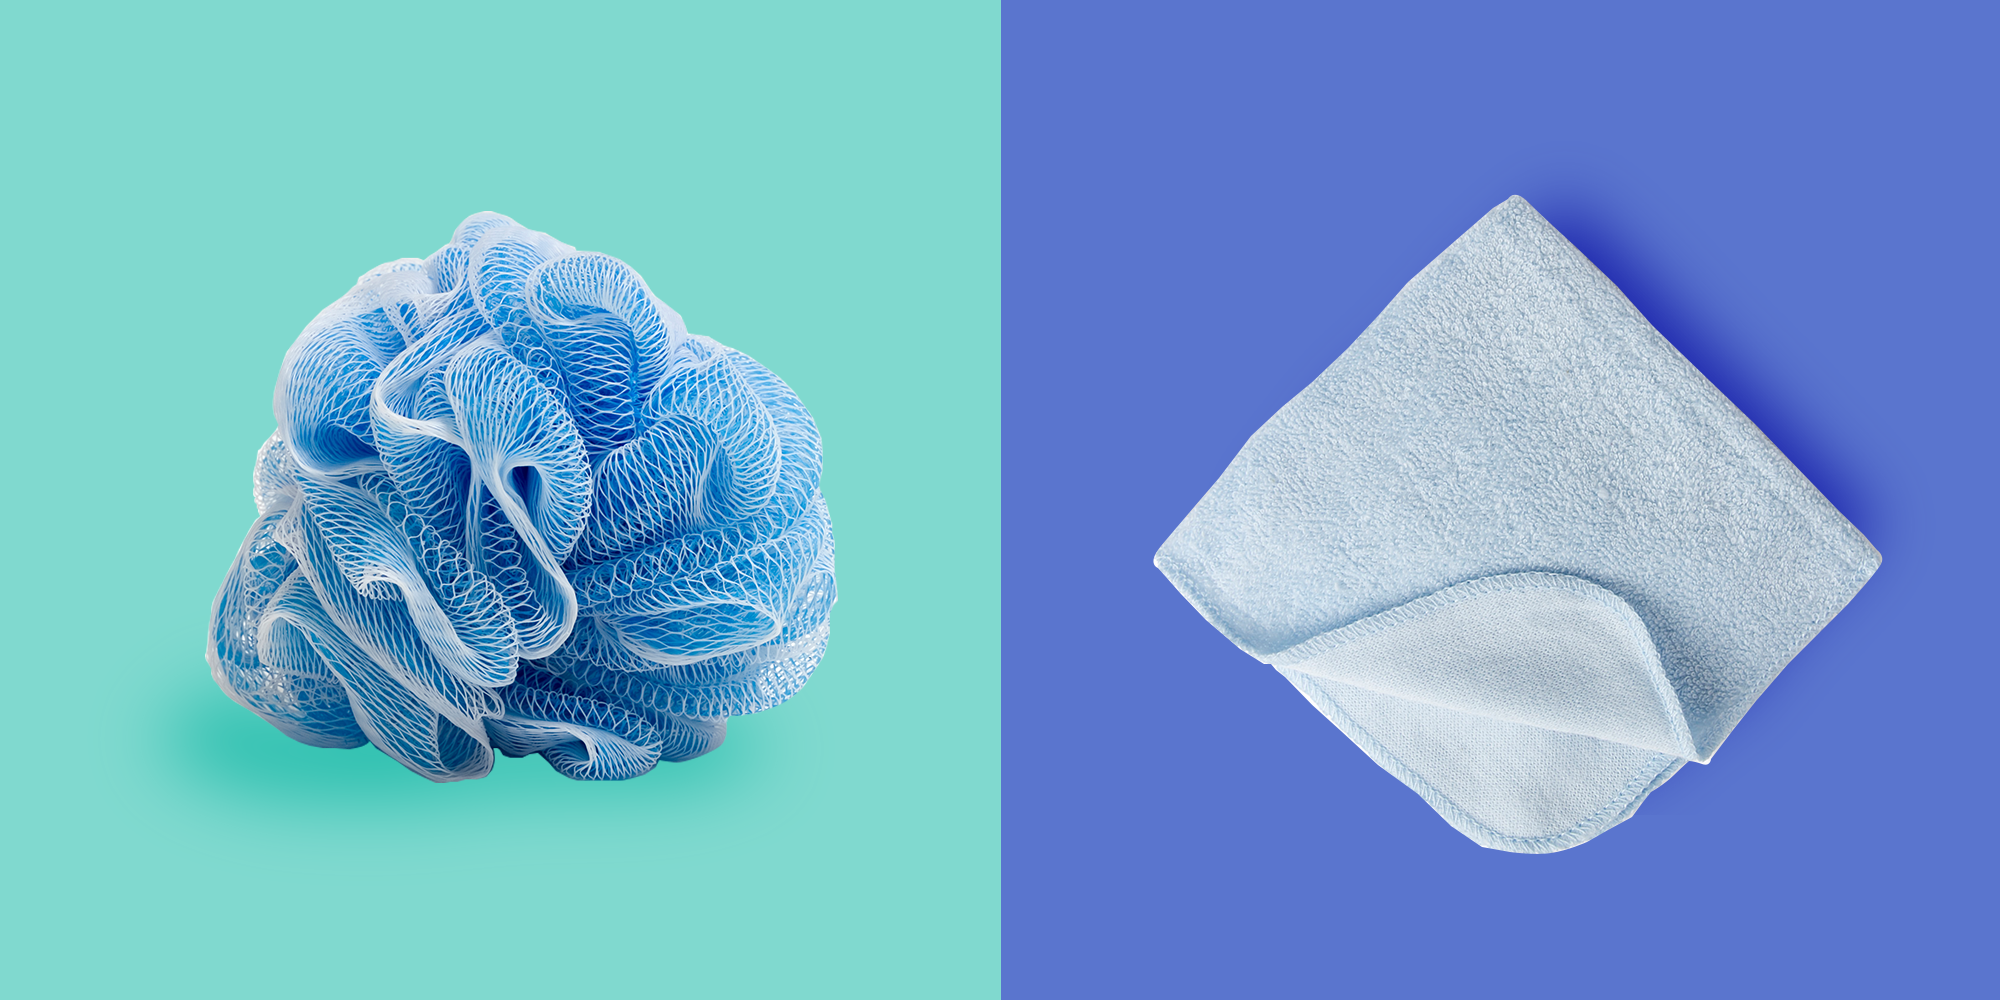 What S Safer To Use In The Shower Loofah Or Washcloth